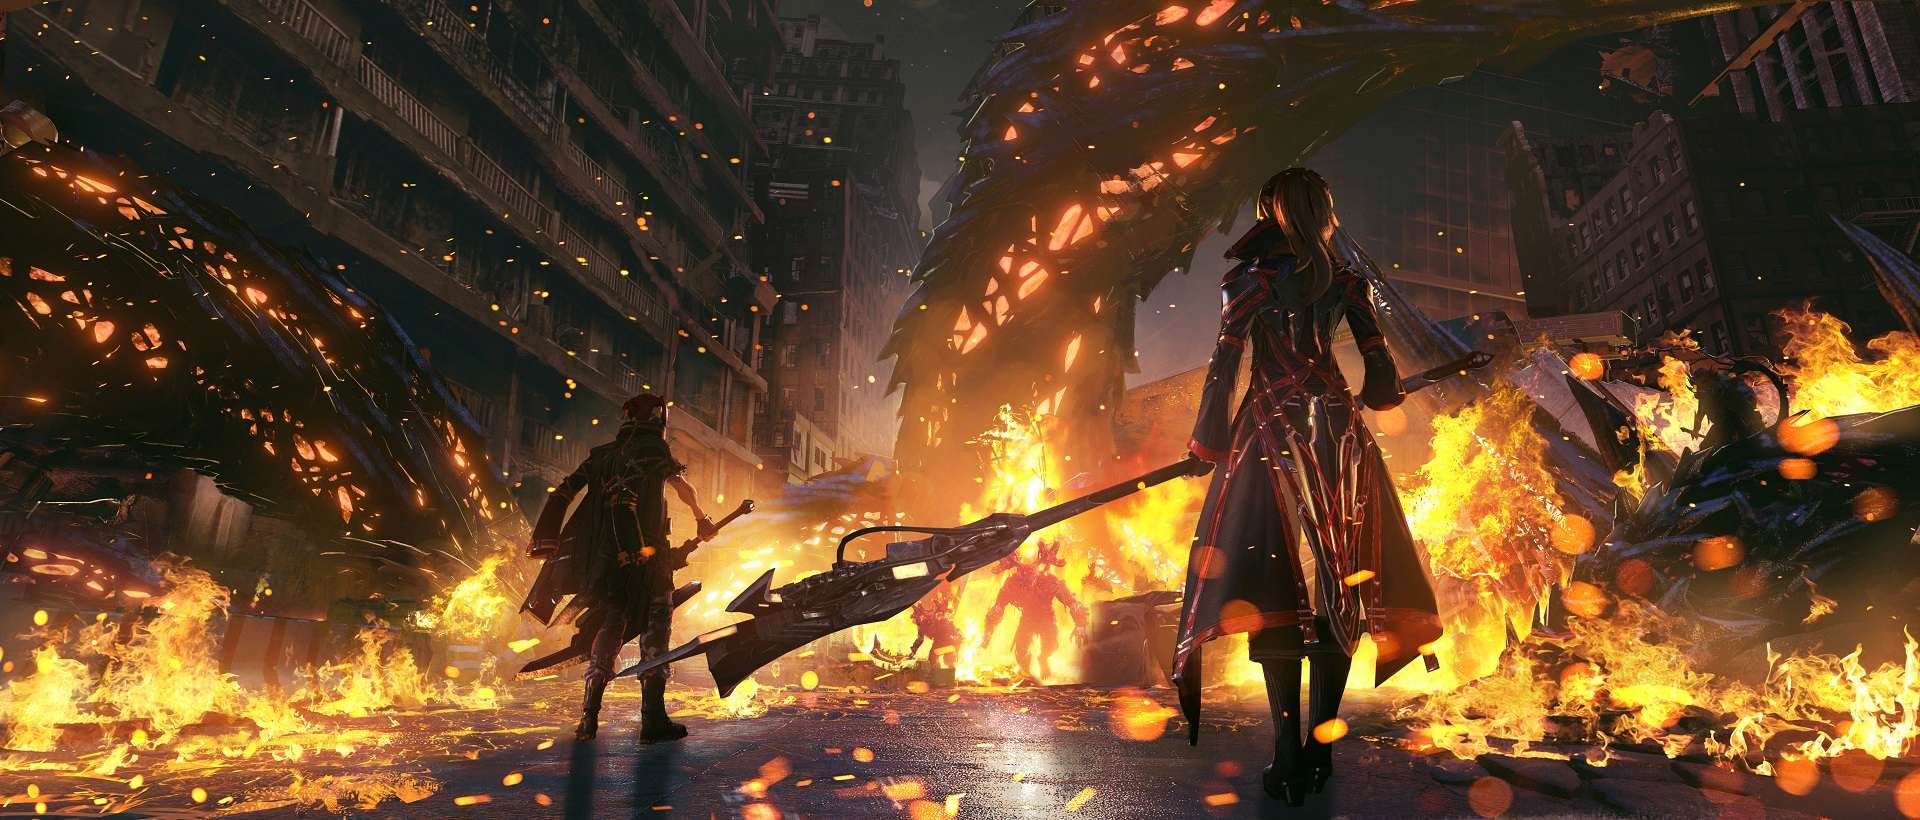 Code Vein - City of Falling Flames